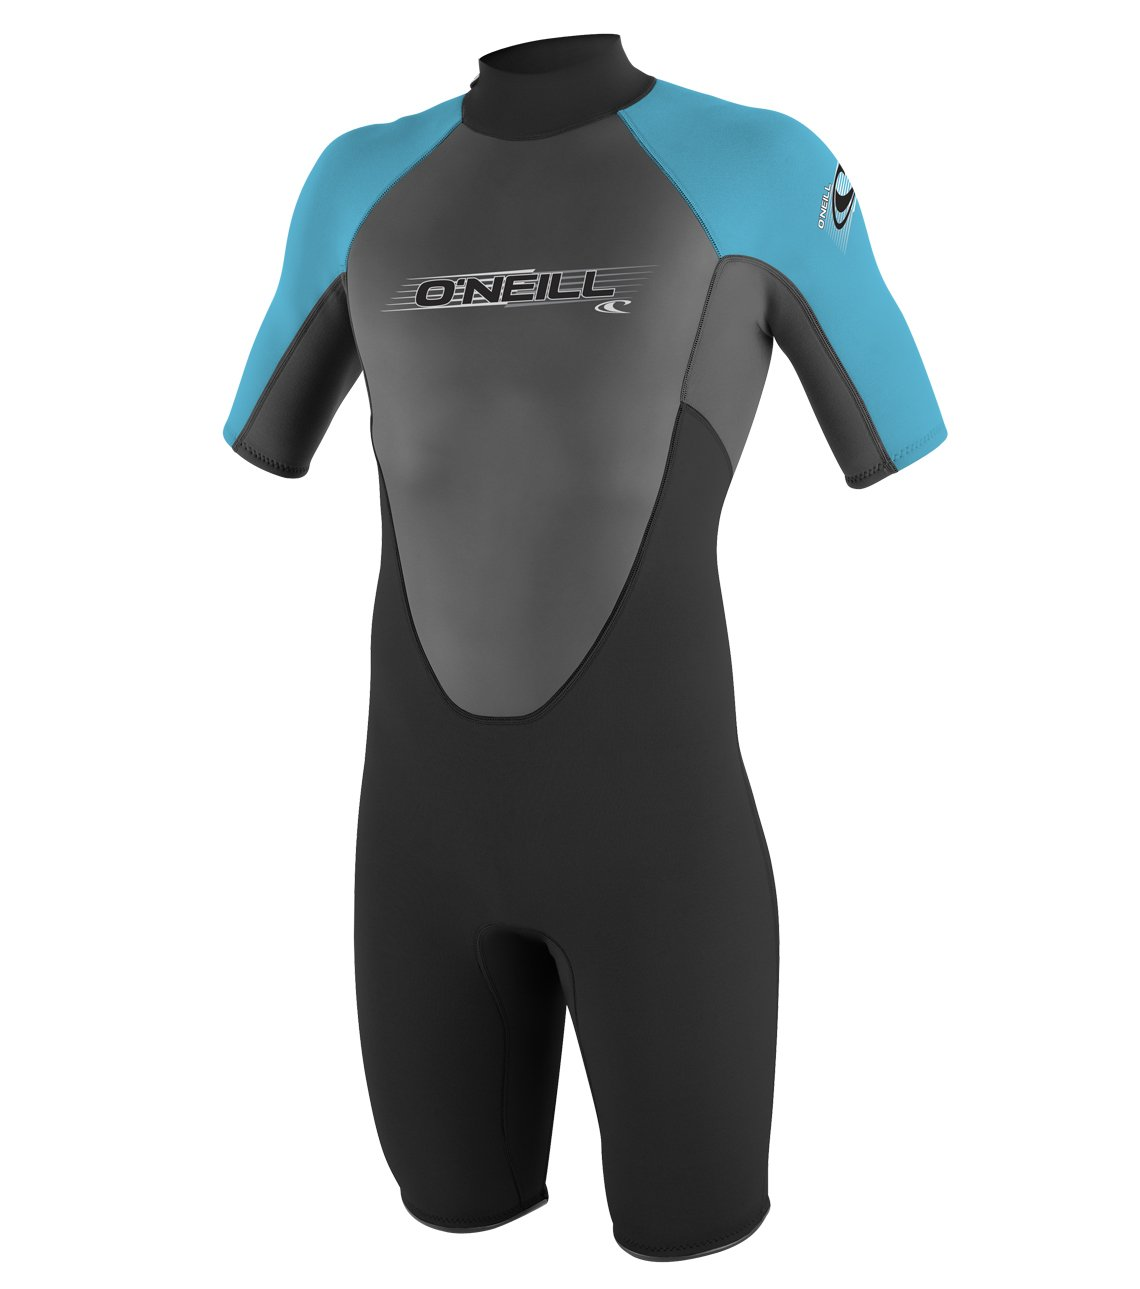 O'Neill Youth Reactor 2mm Back Zip Spring Wetsuit, Black/Graphite/Turquoise, 8 by O'Neill Wetsuits